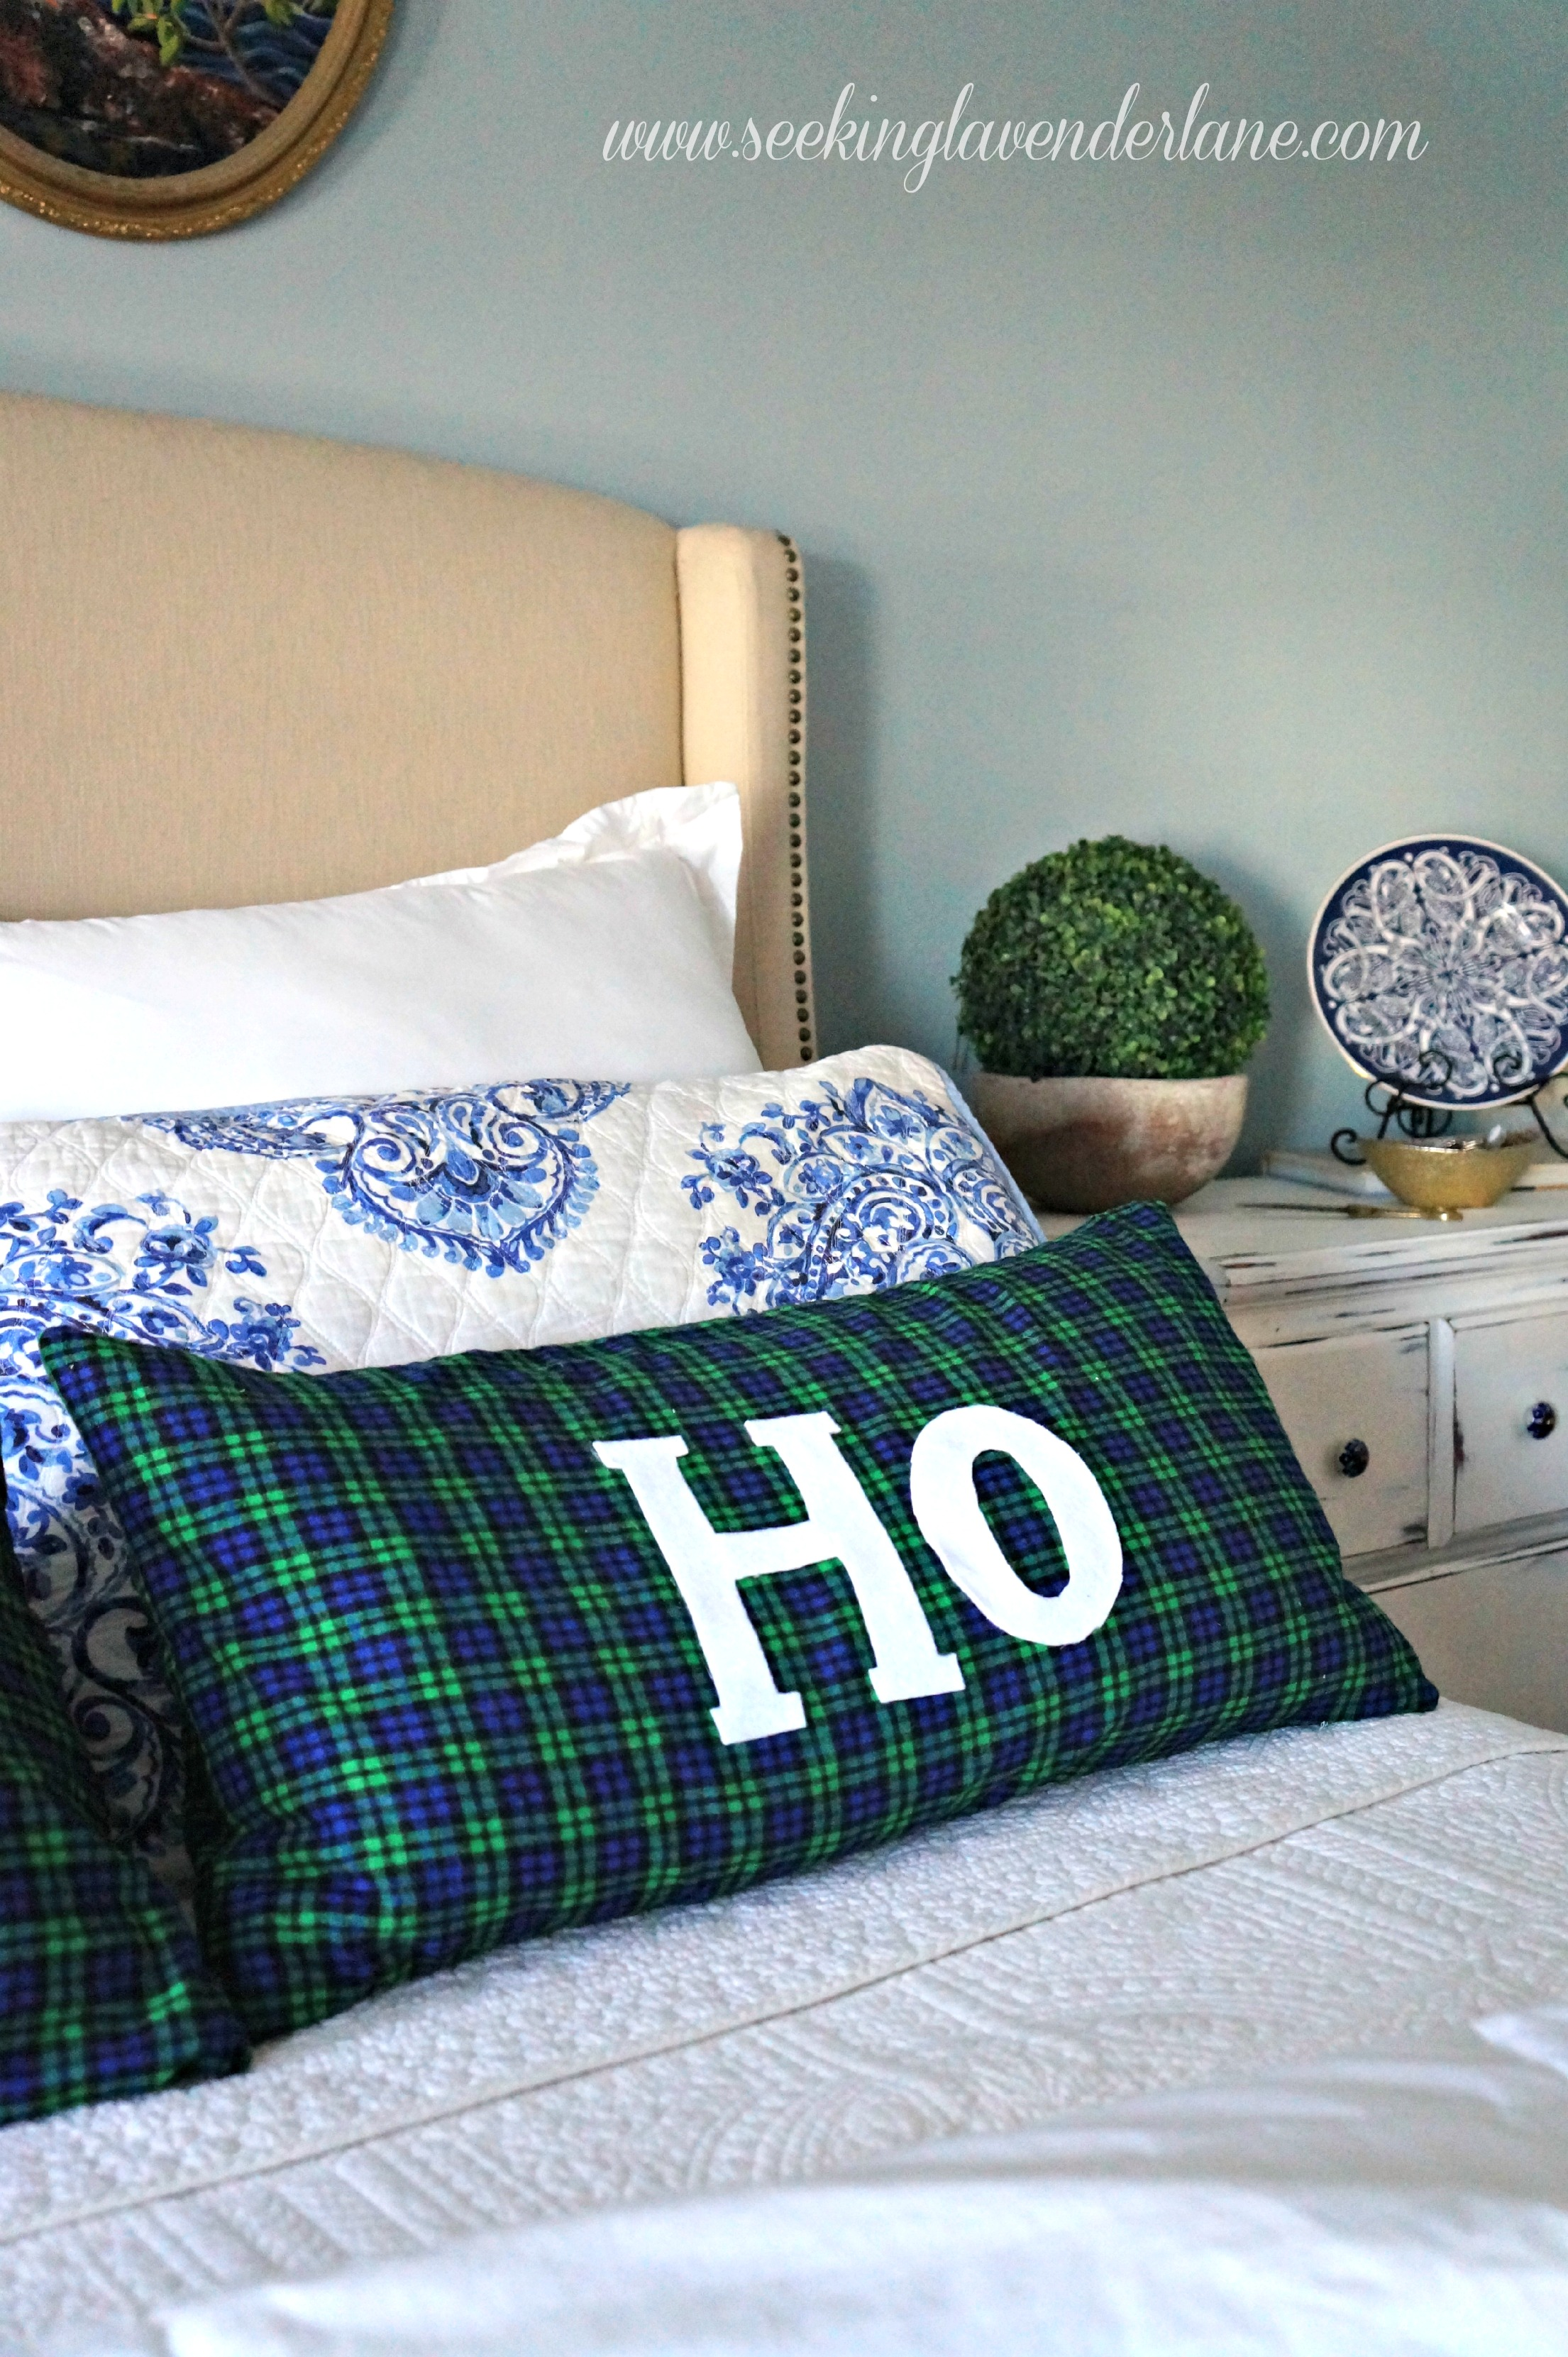 DIY HO HO pillows